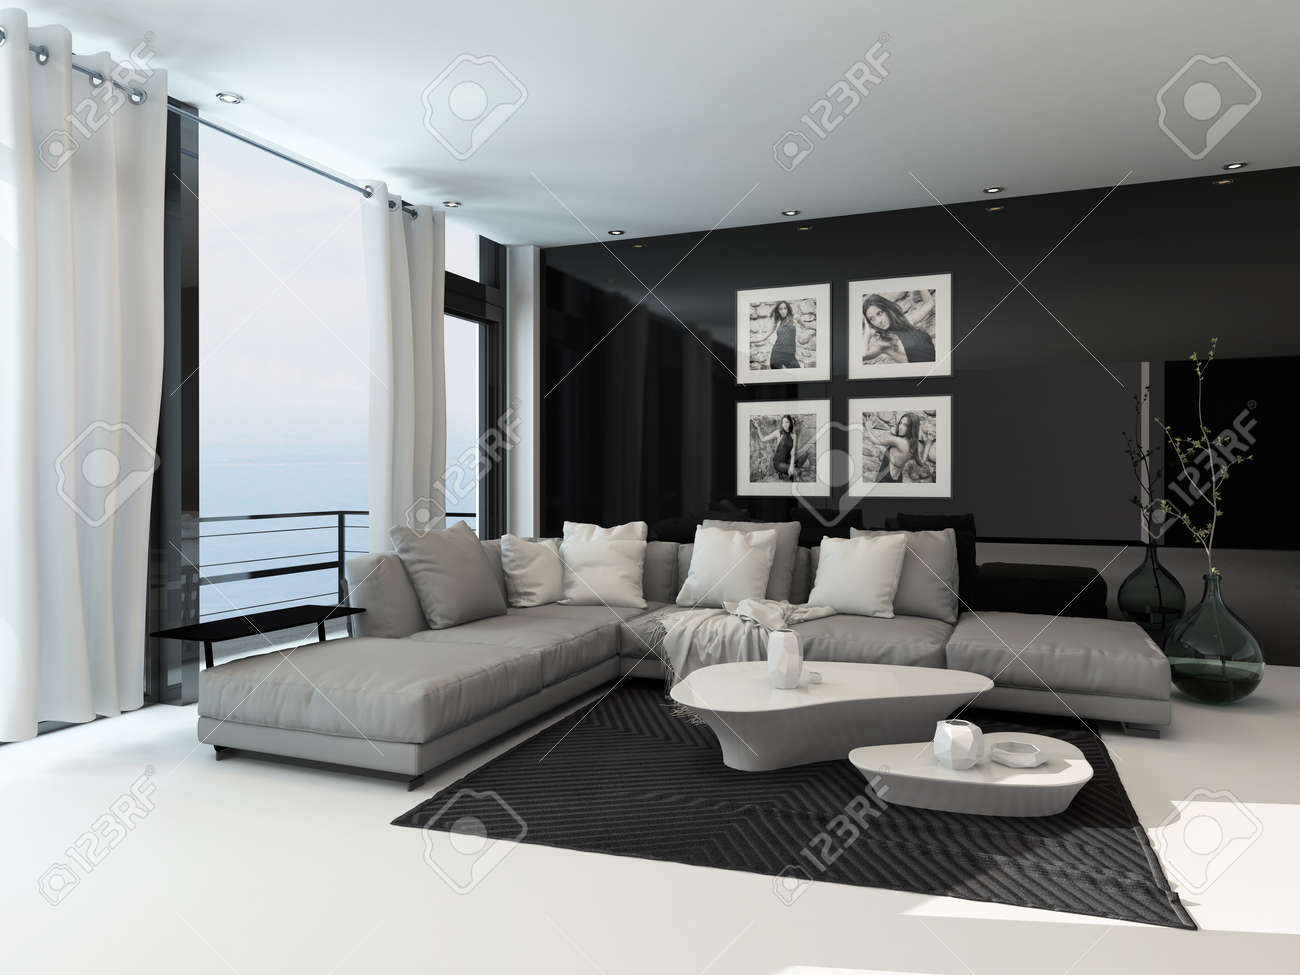 Lounge Interior In A Coastal Apartment With Floor To Ceiling ...